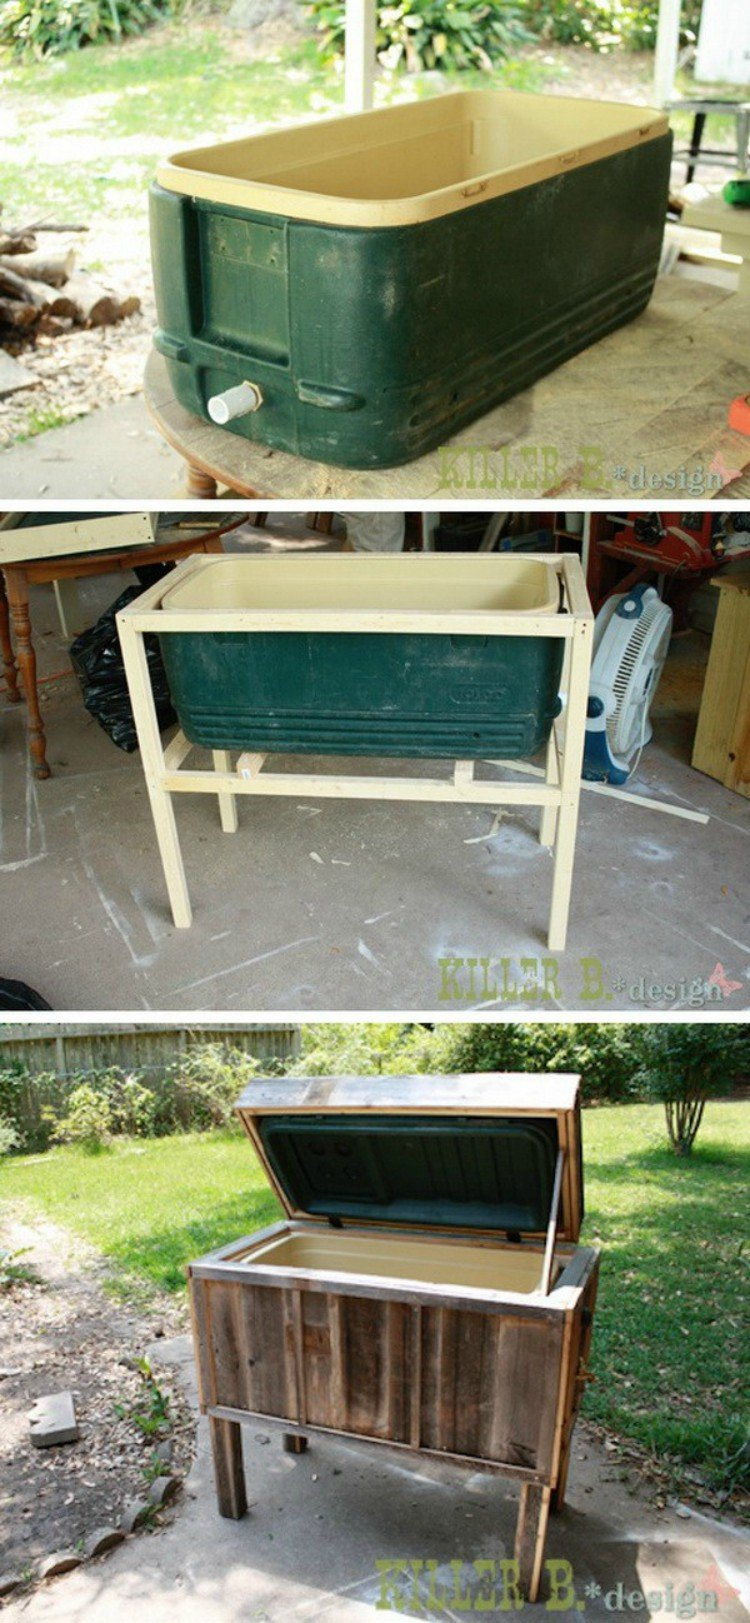 Rustic ice chest made of cooler.